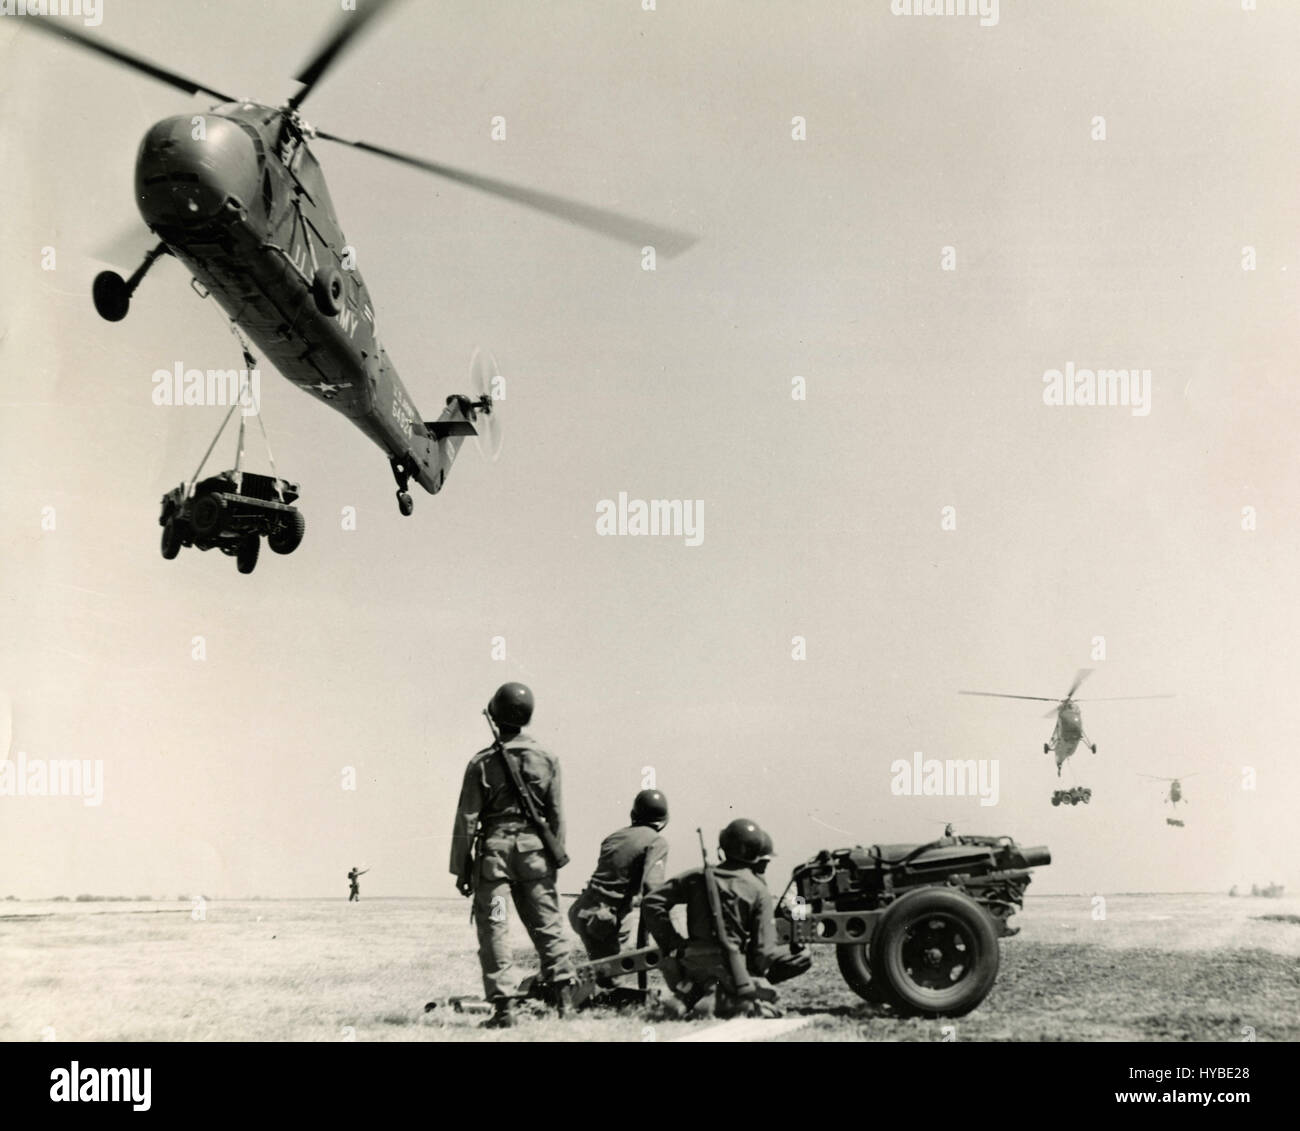 US Army tactical training with H-34 helicopters, Oklahoma, USA - Stock Image